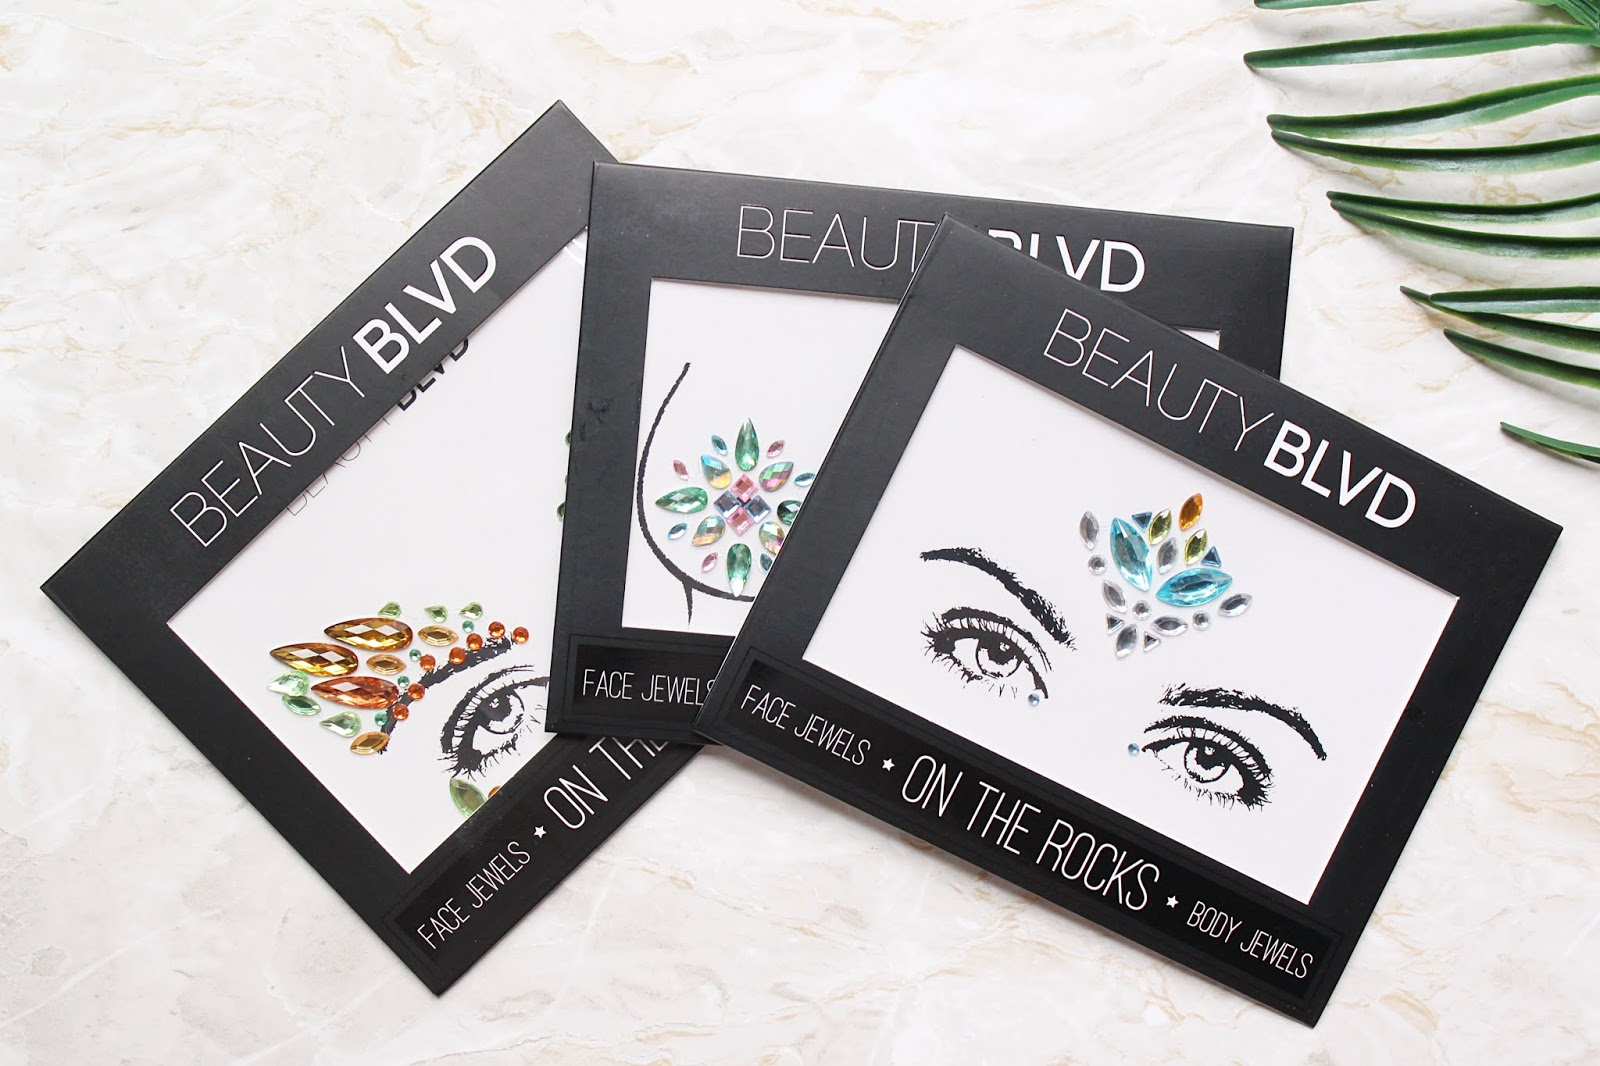 Beauty BLVD Face & Body Jewels